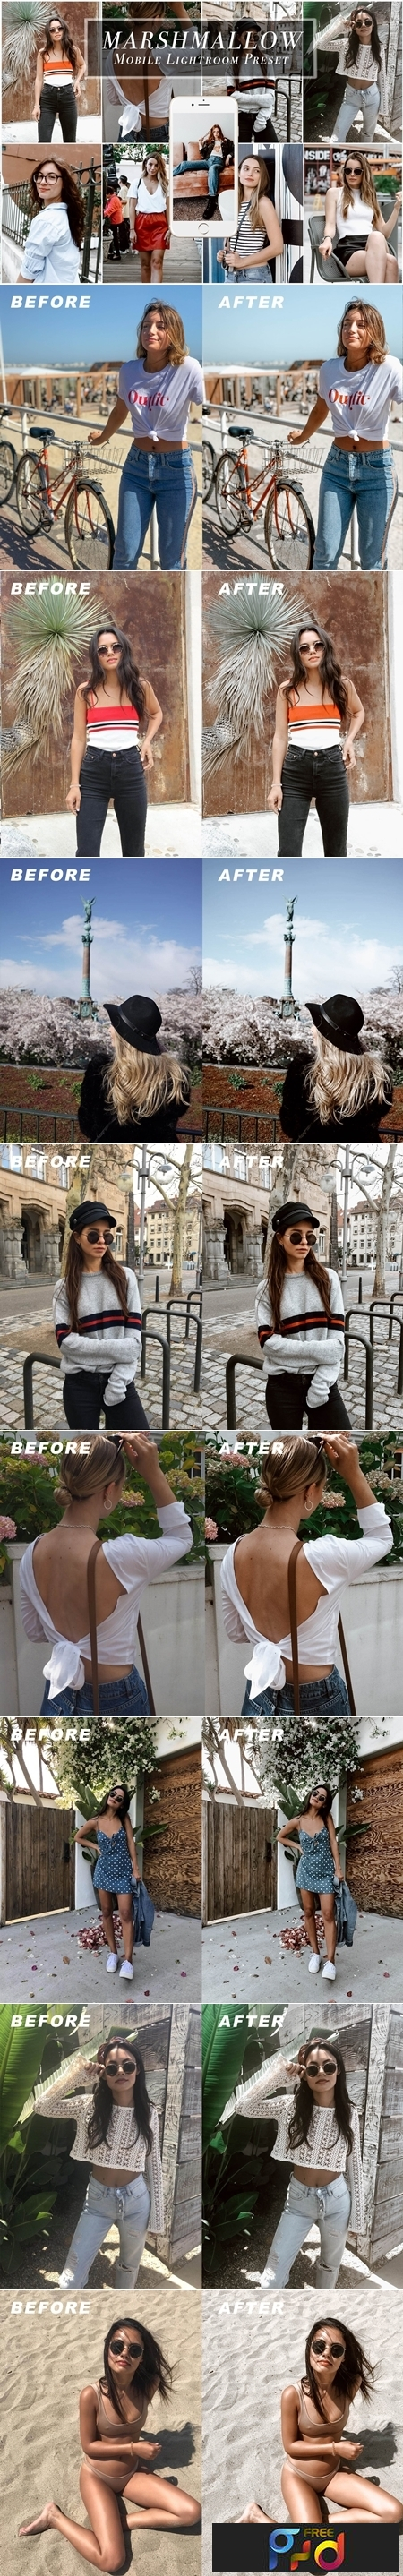 Mobile Lightroom Preset for Bloggers 3472020 1